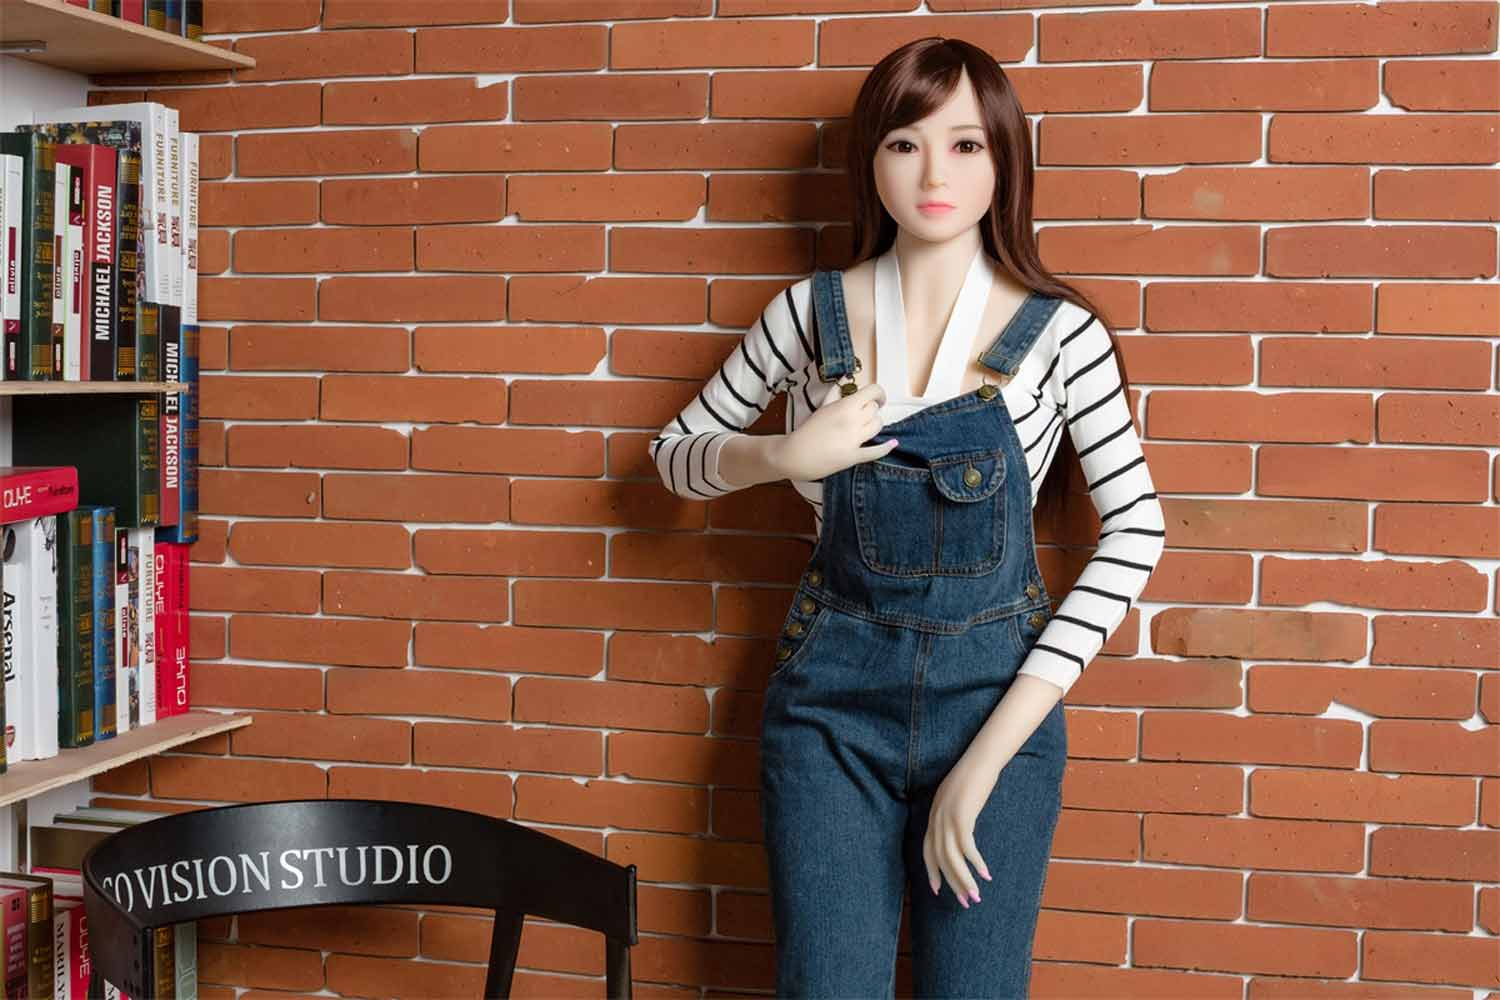 Sex doll with hand drawn denim jumpsuit